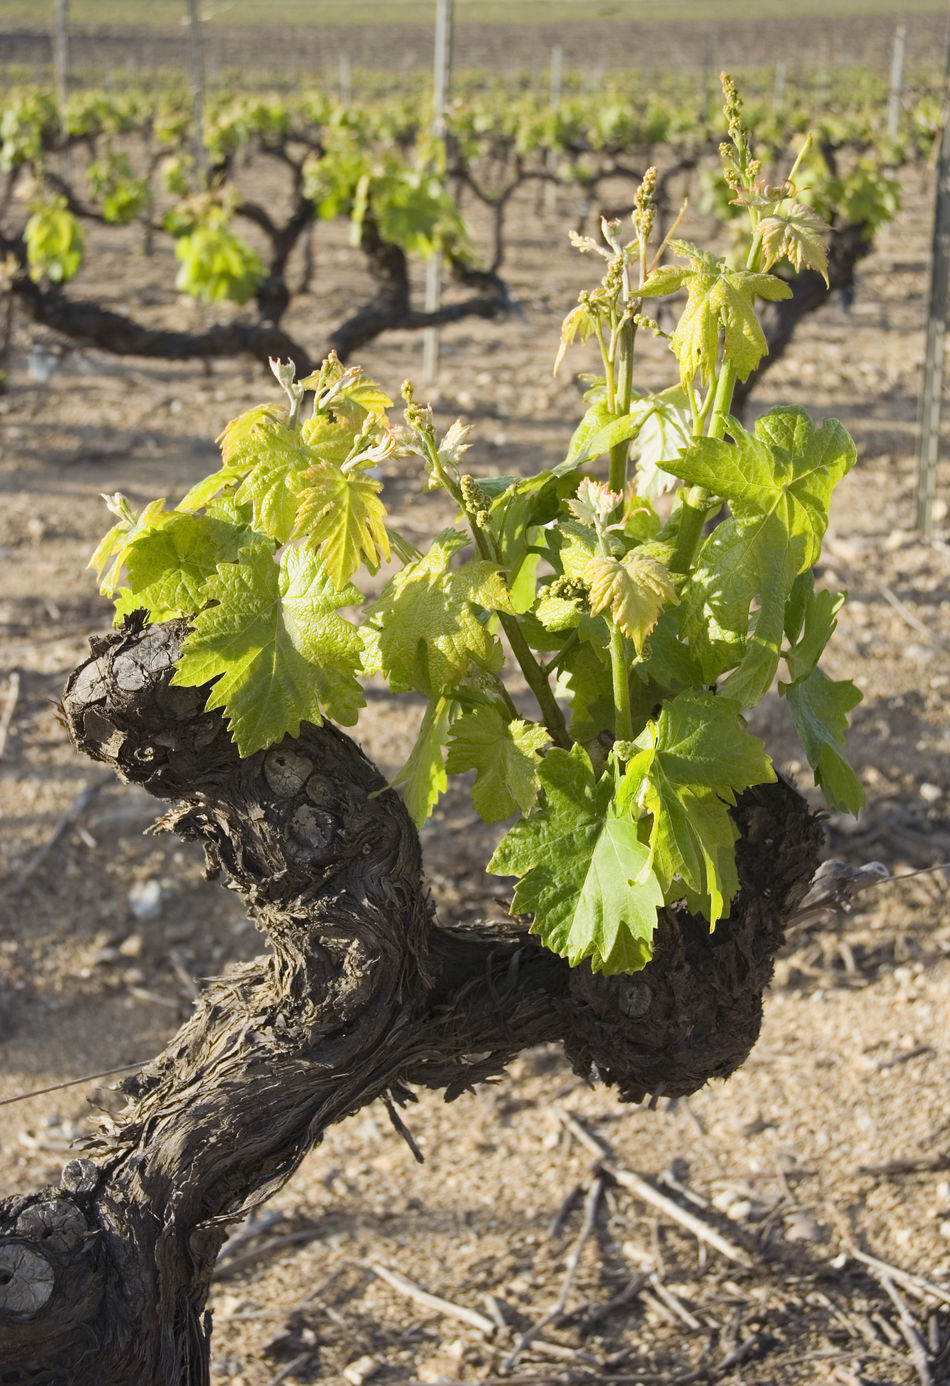 closeup of a grapevine - french riviera Agriculture Beginnings Close-up Cultivated Land France Freshness Gnarled Grape Grapevine Growing Growth Leaf New Life No People Provence Scion  Spring Springtime Sprouts Terroir Vine Vineyard Viticulture Vitis Vinifera Wine